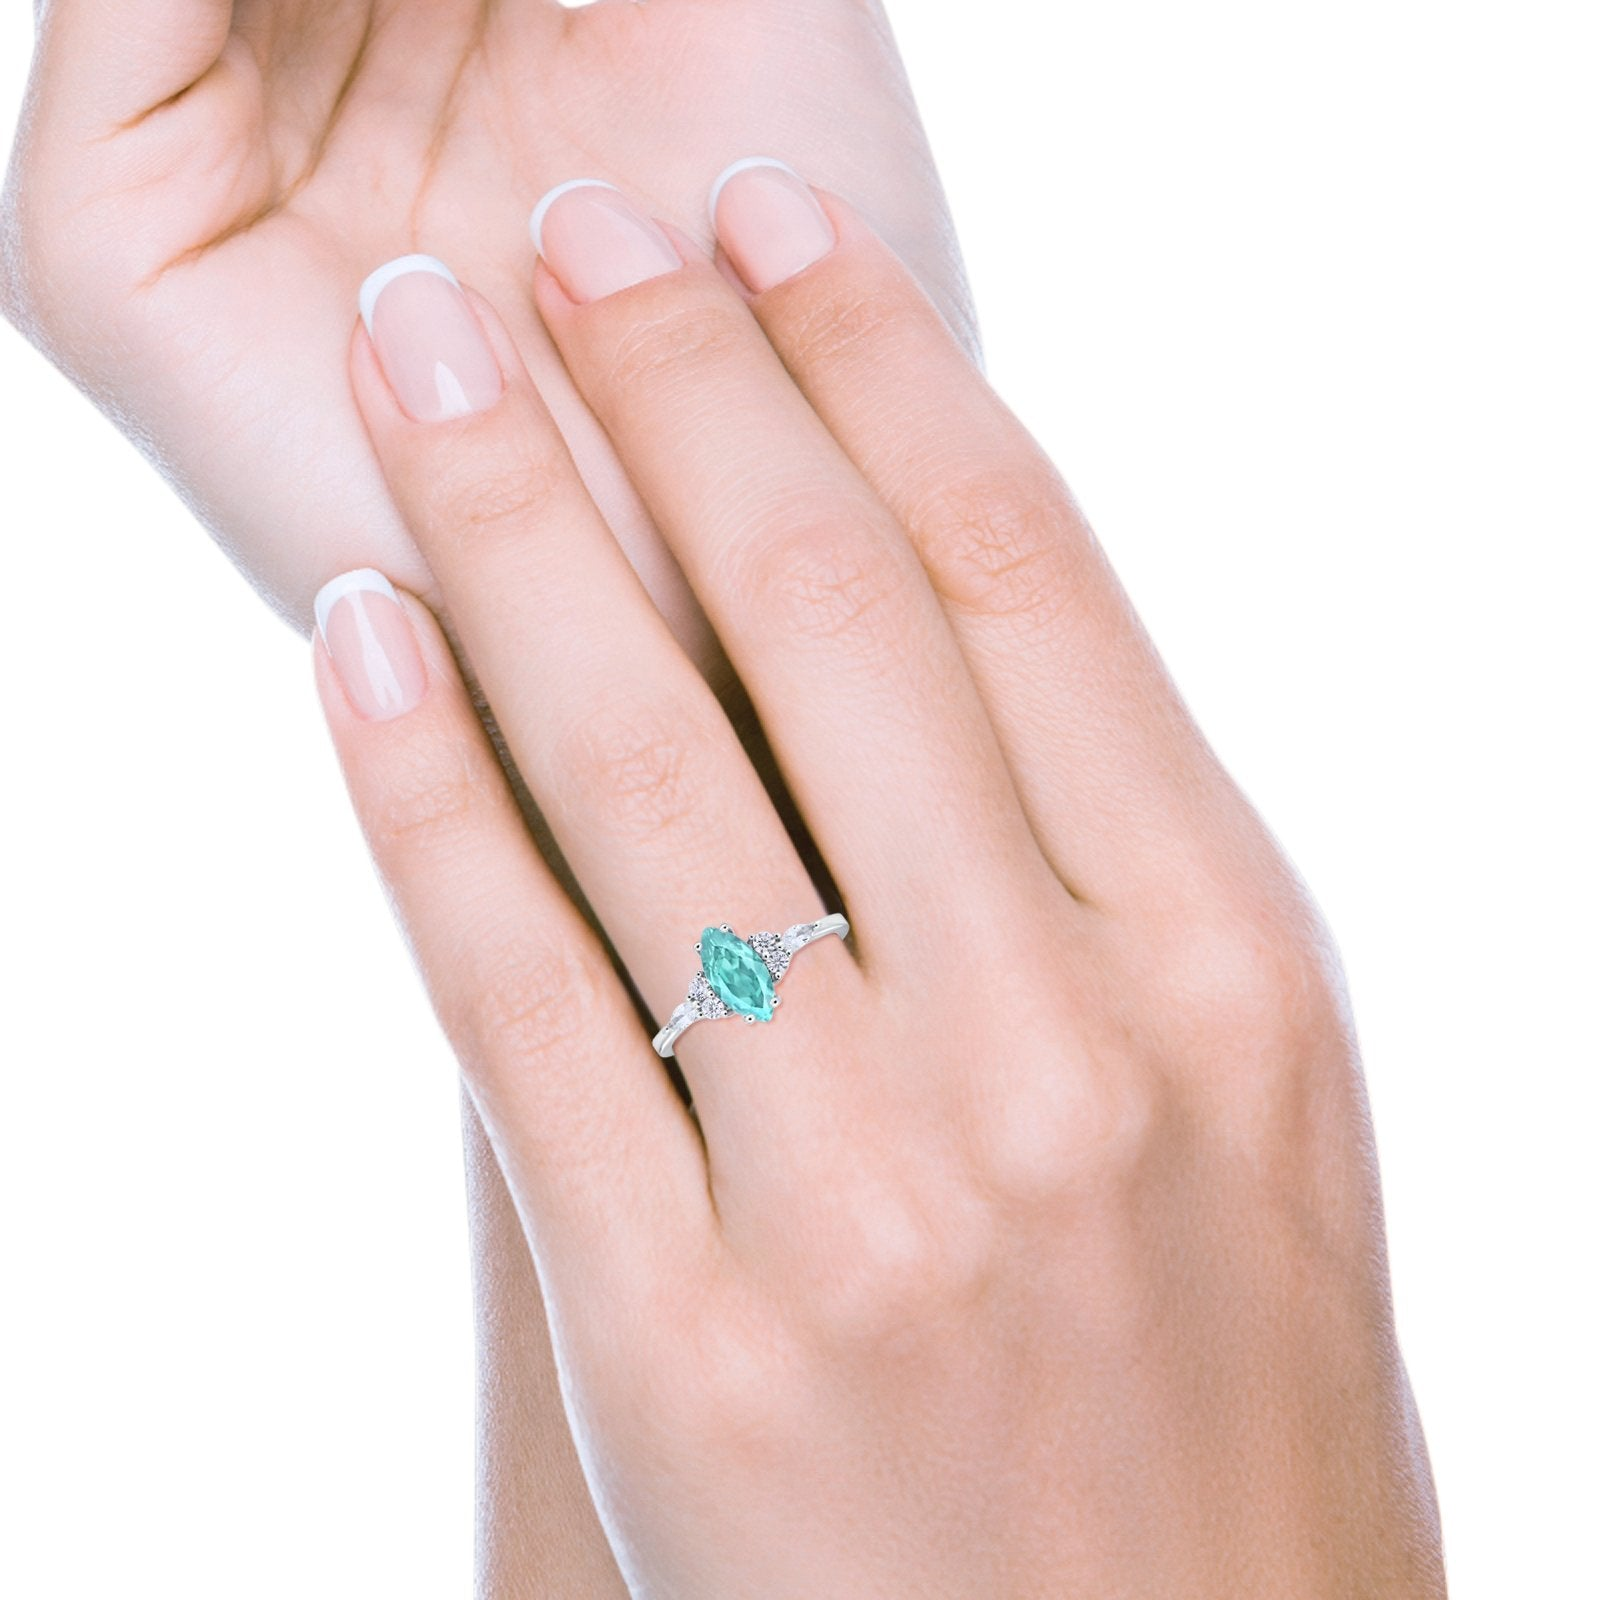 Vintage Style Marquise Wedding Ring Simulated Paraiba Tourmaline CZ 925 Sterling Silver